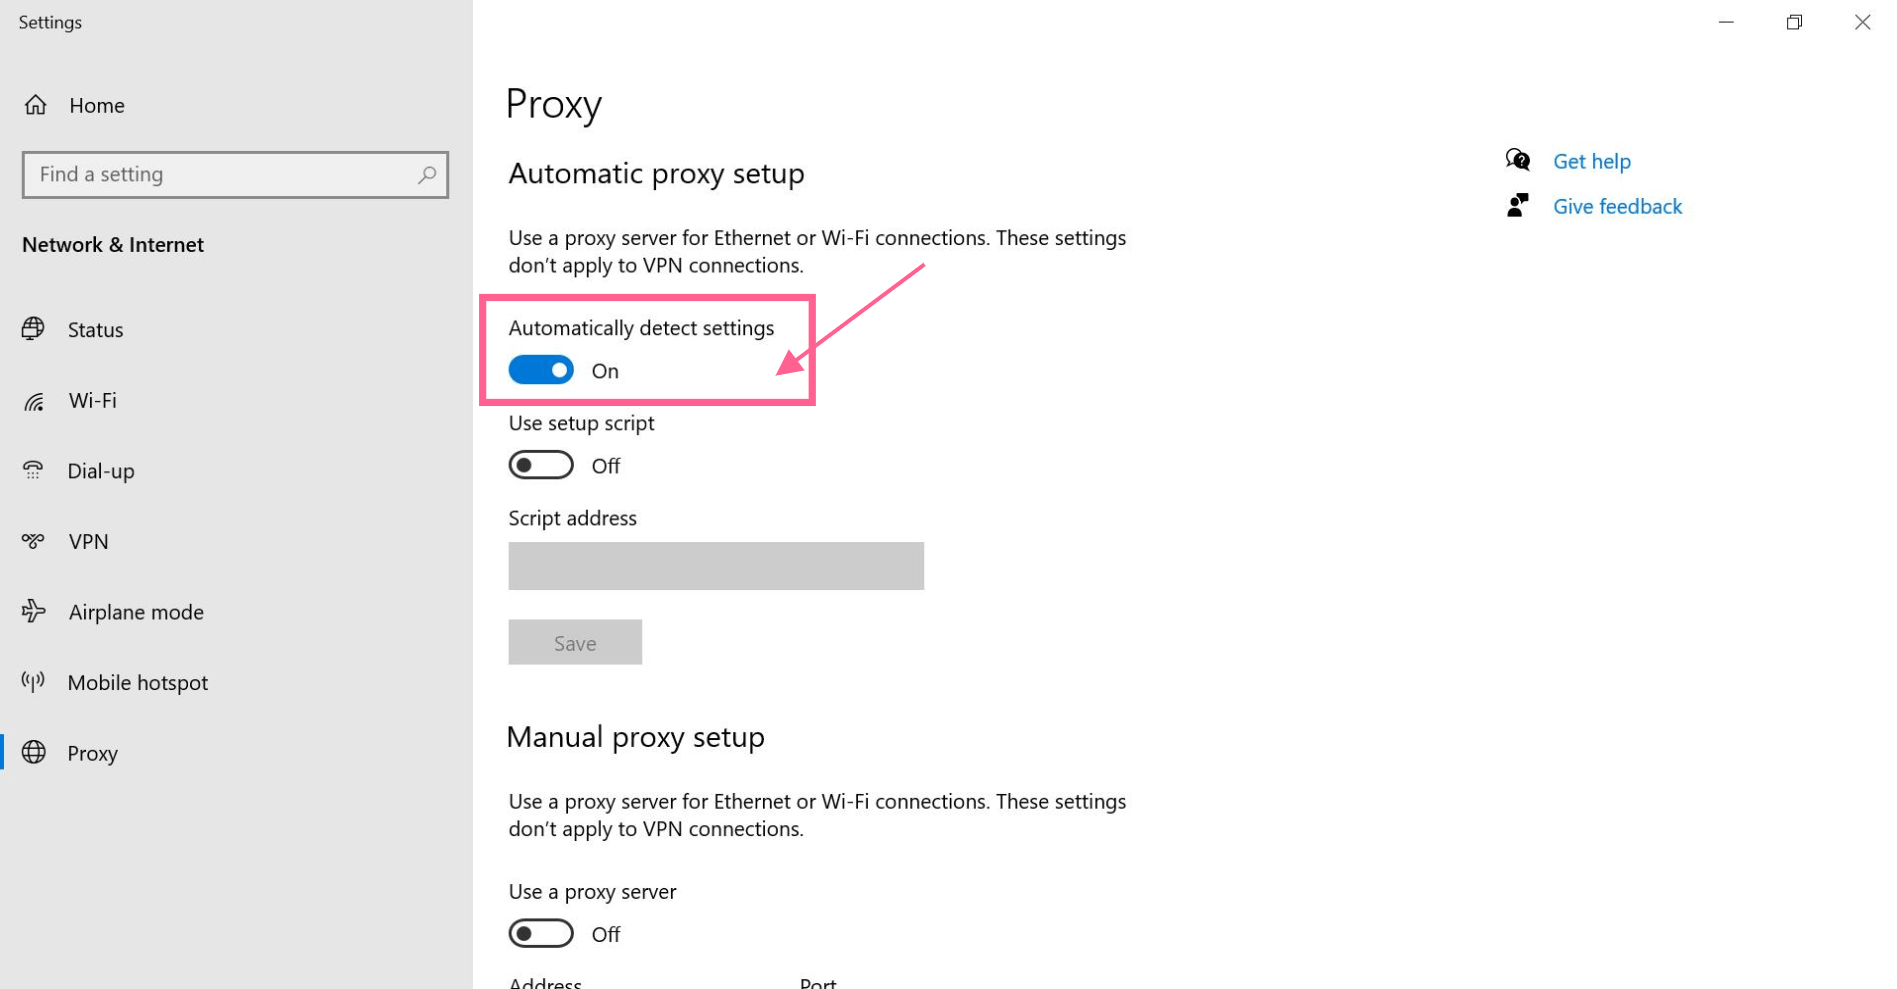 proxy automate detect settings err_timed_out